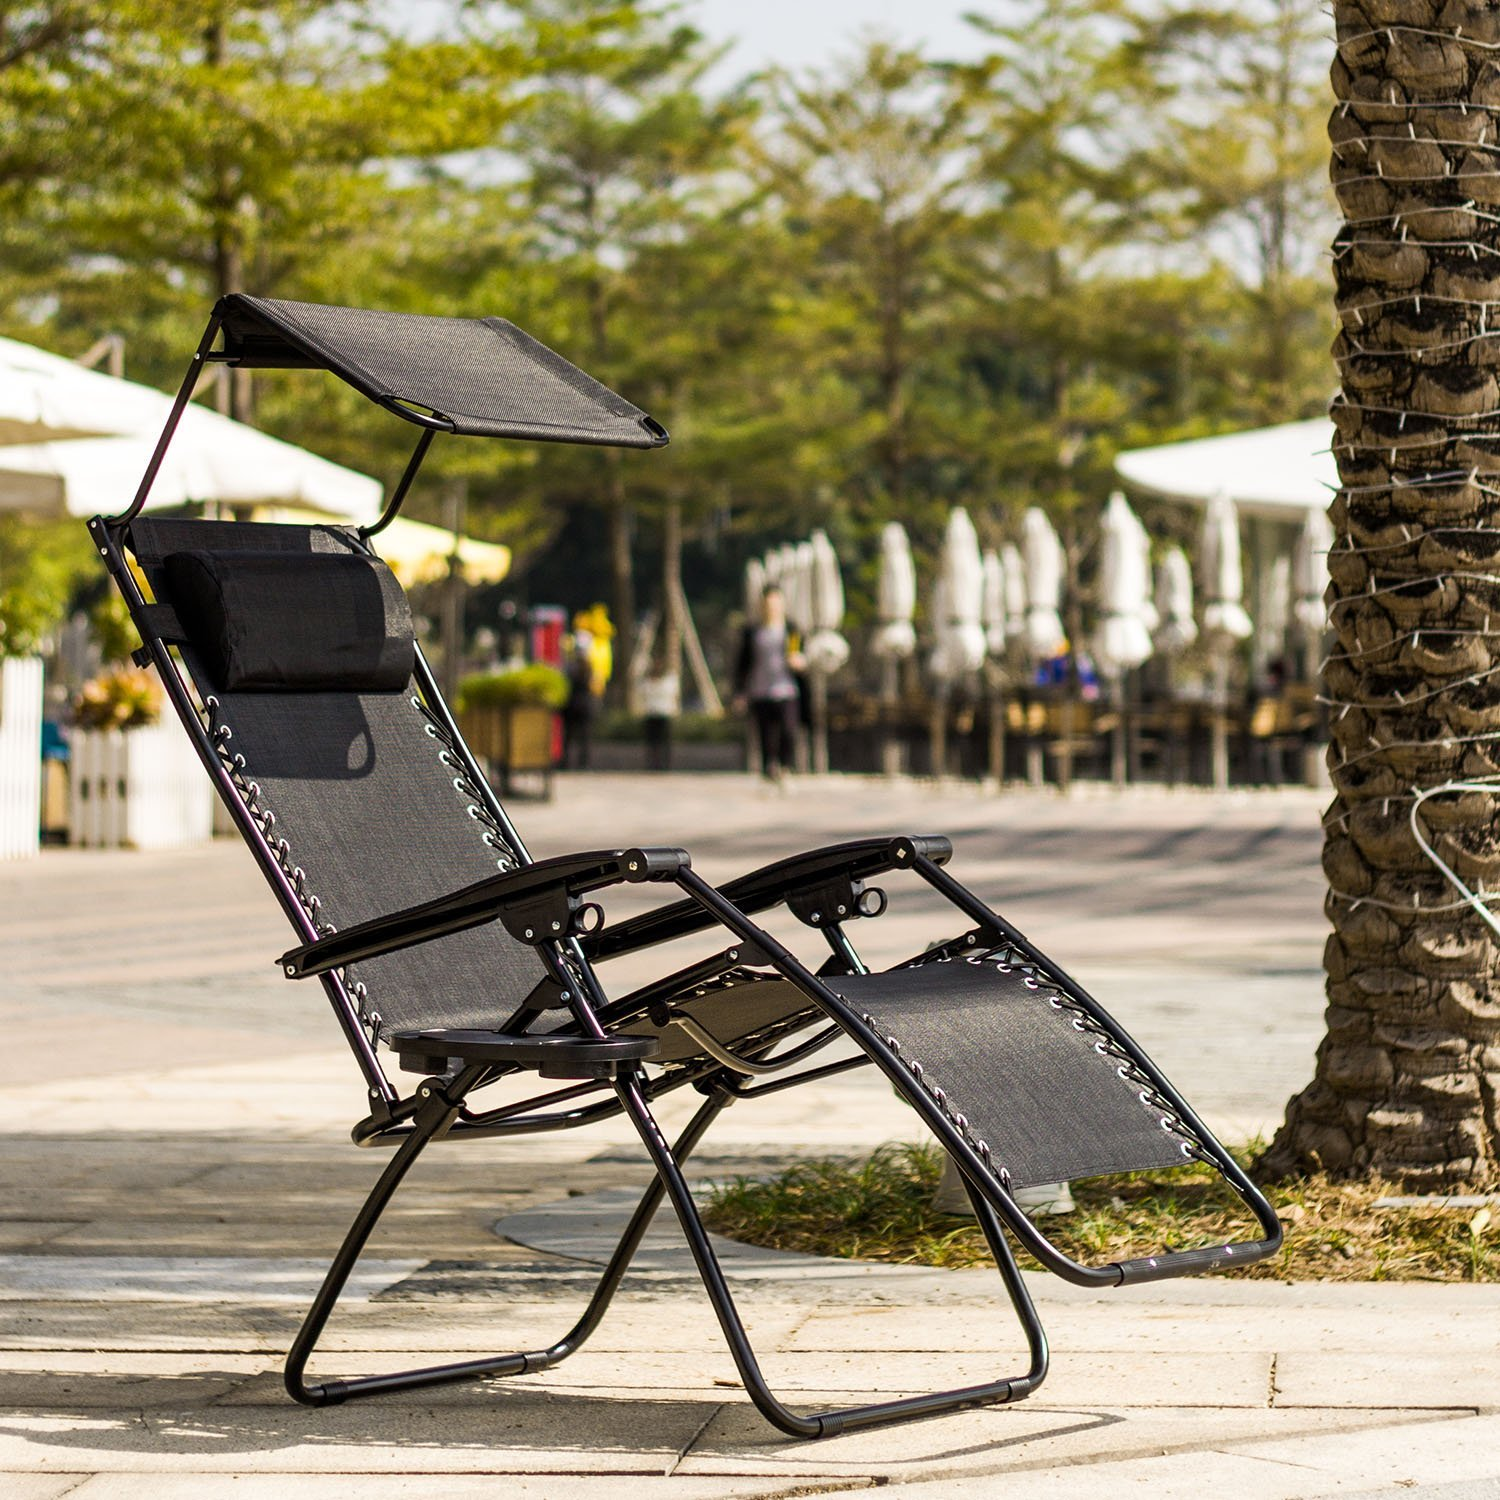 Best Choice Products Zero Gravity Chair w/ Canopy Shade & Magazine Cup Holder